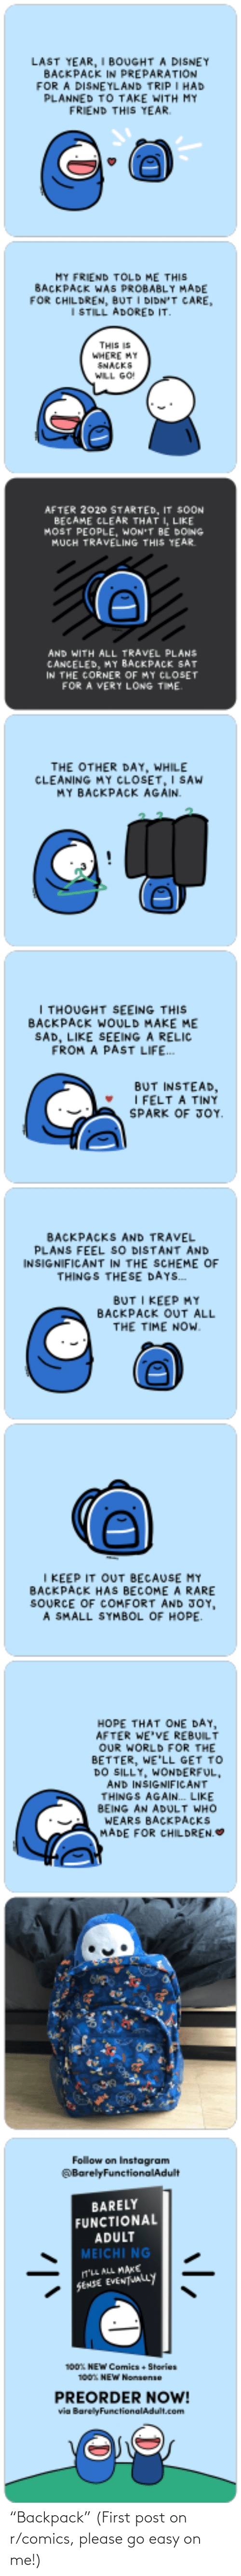 "Comics: ""Backpack"" (First post on r/comics, please go easy on me!)"